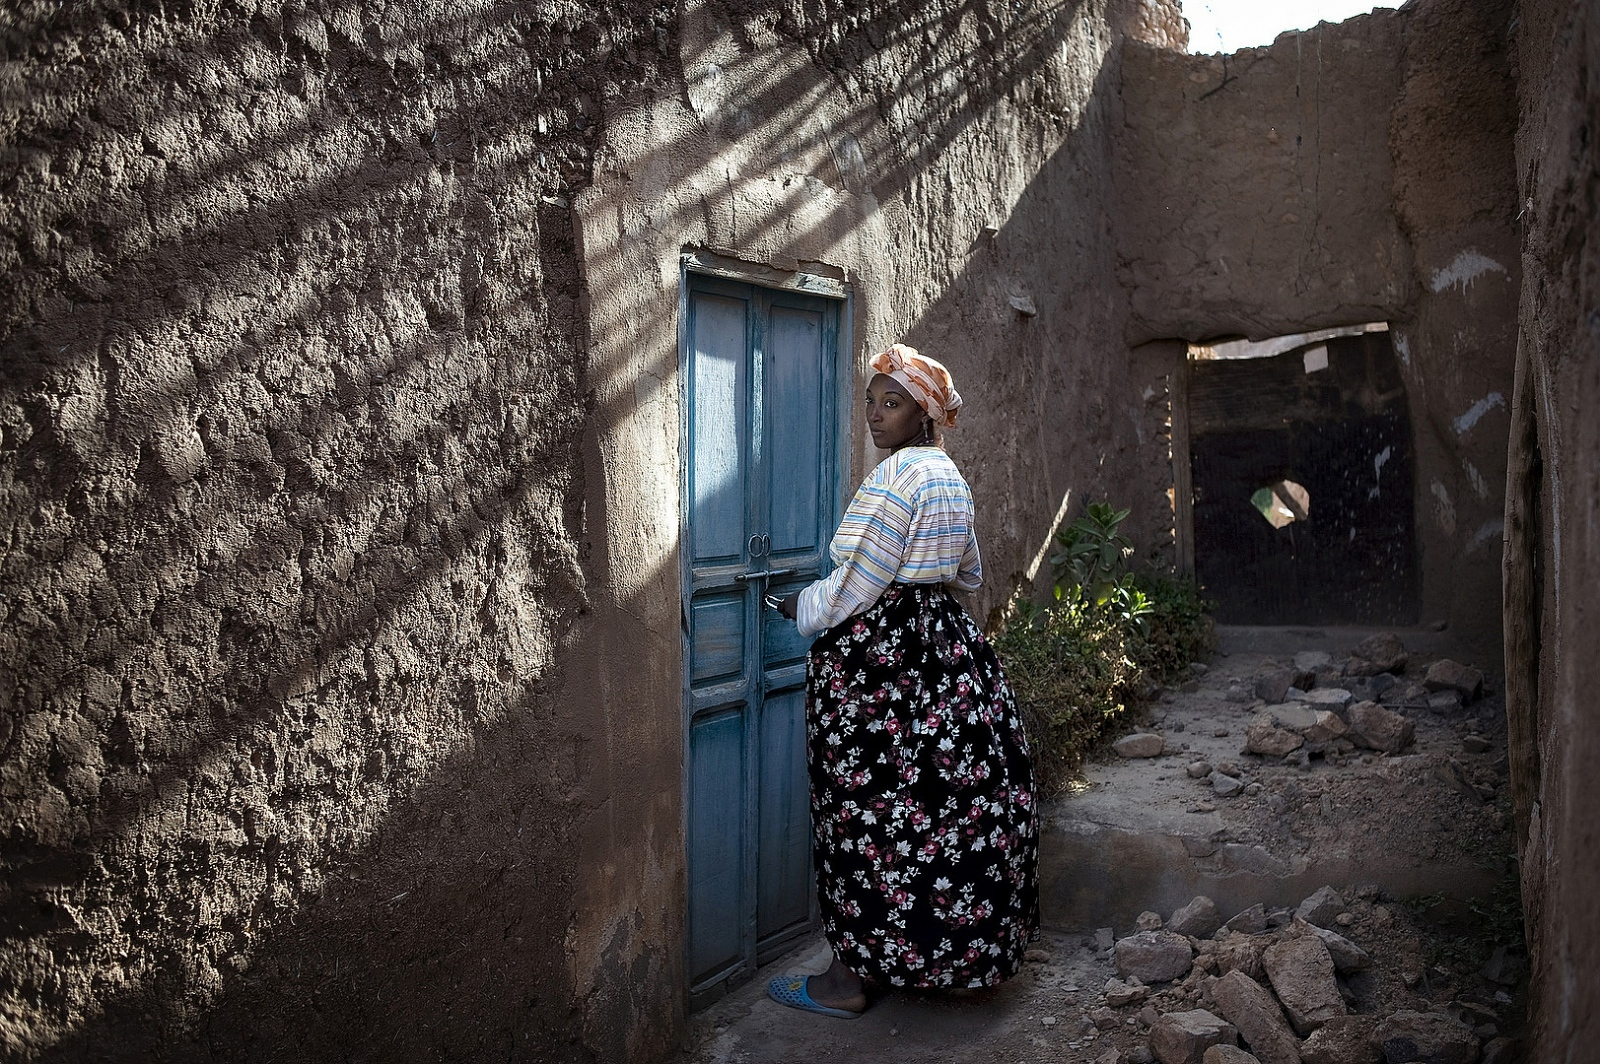 2010- Zubeida, 28, opens the door to the Synagogue which she has been the guardian of since its restoration in 2002 in the small southern Village of Irill Noro, Morocco.